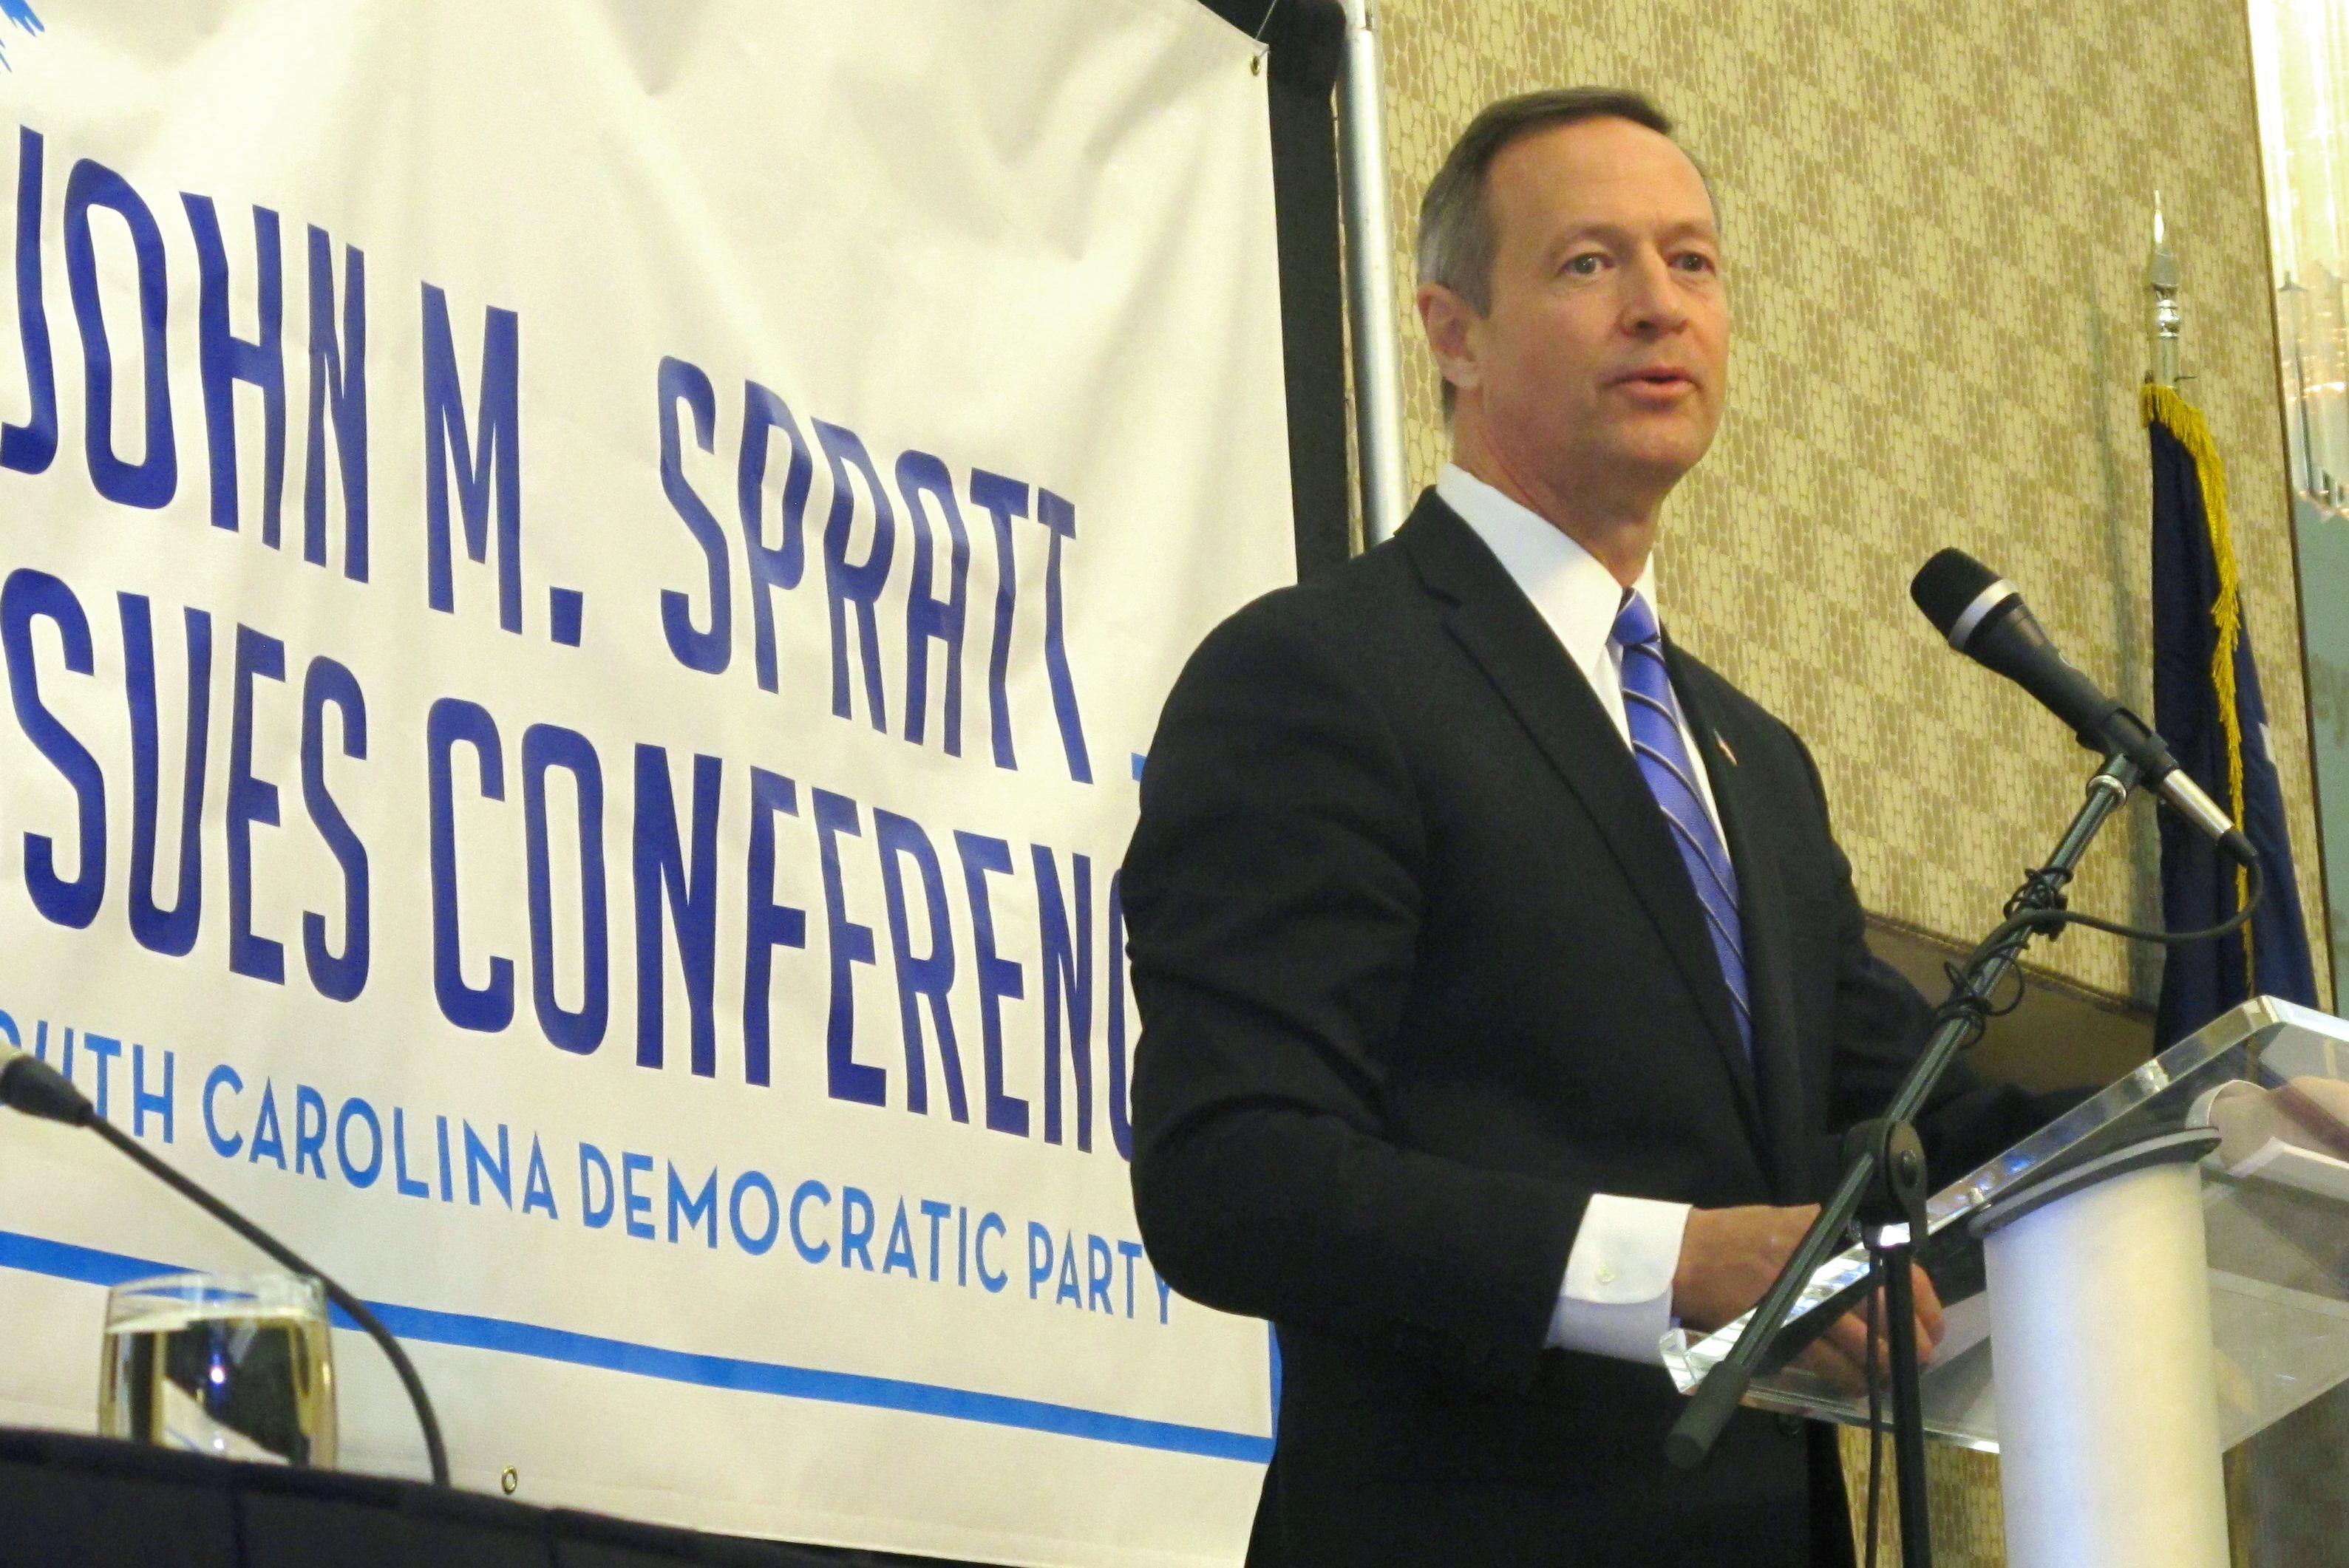 O'Malley points to financial regulation as a campaign issue